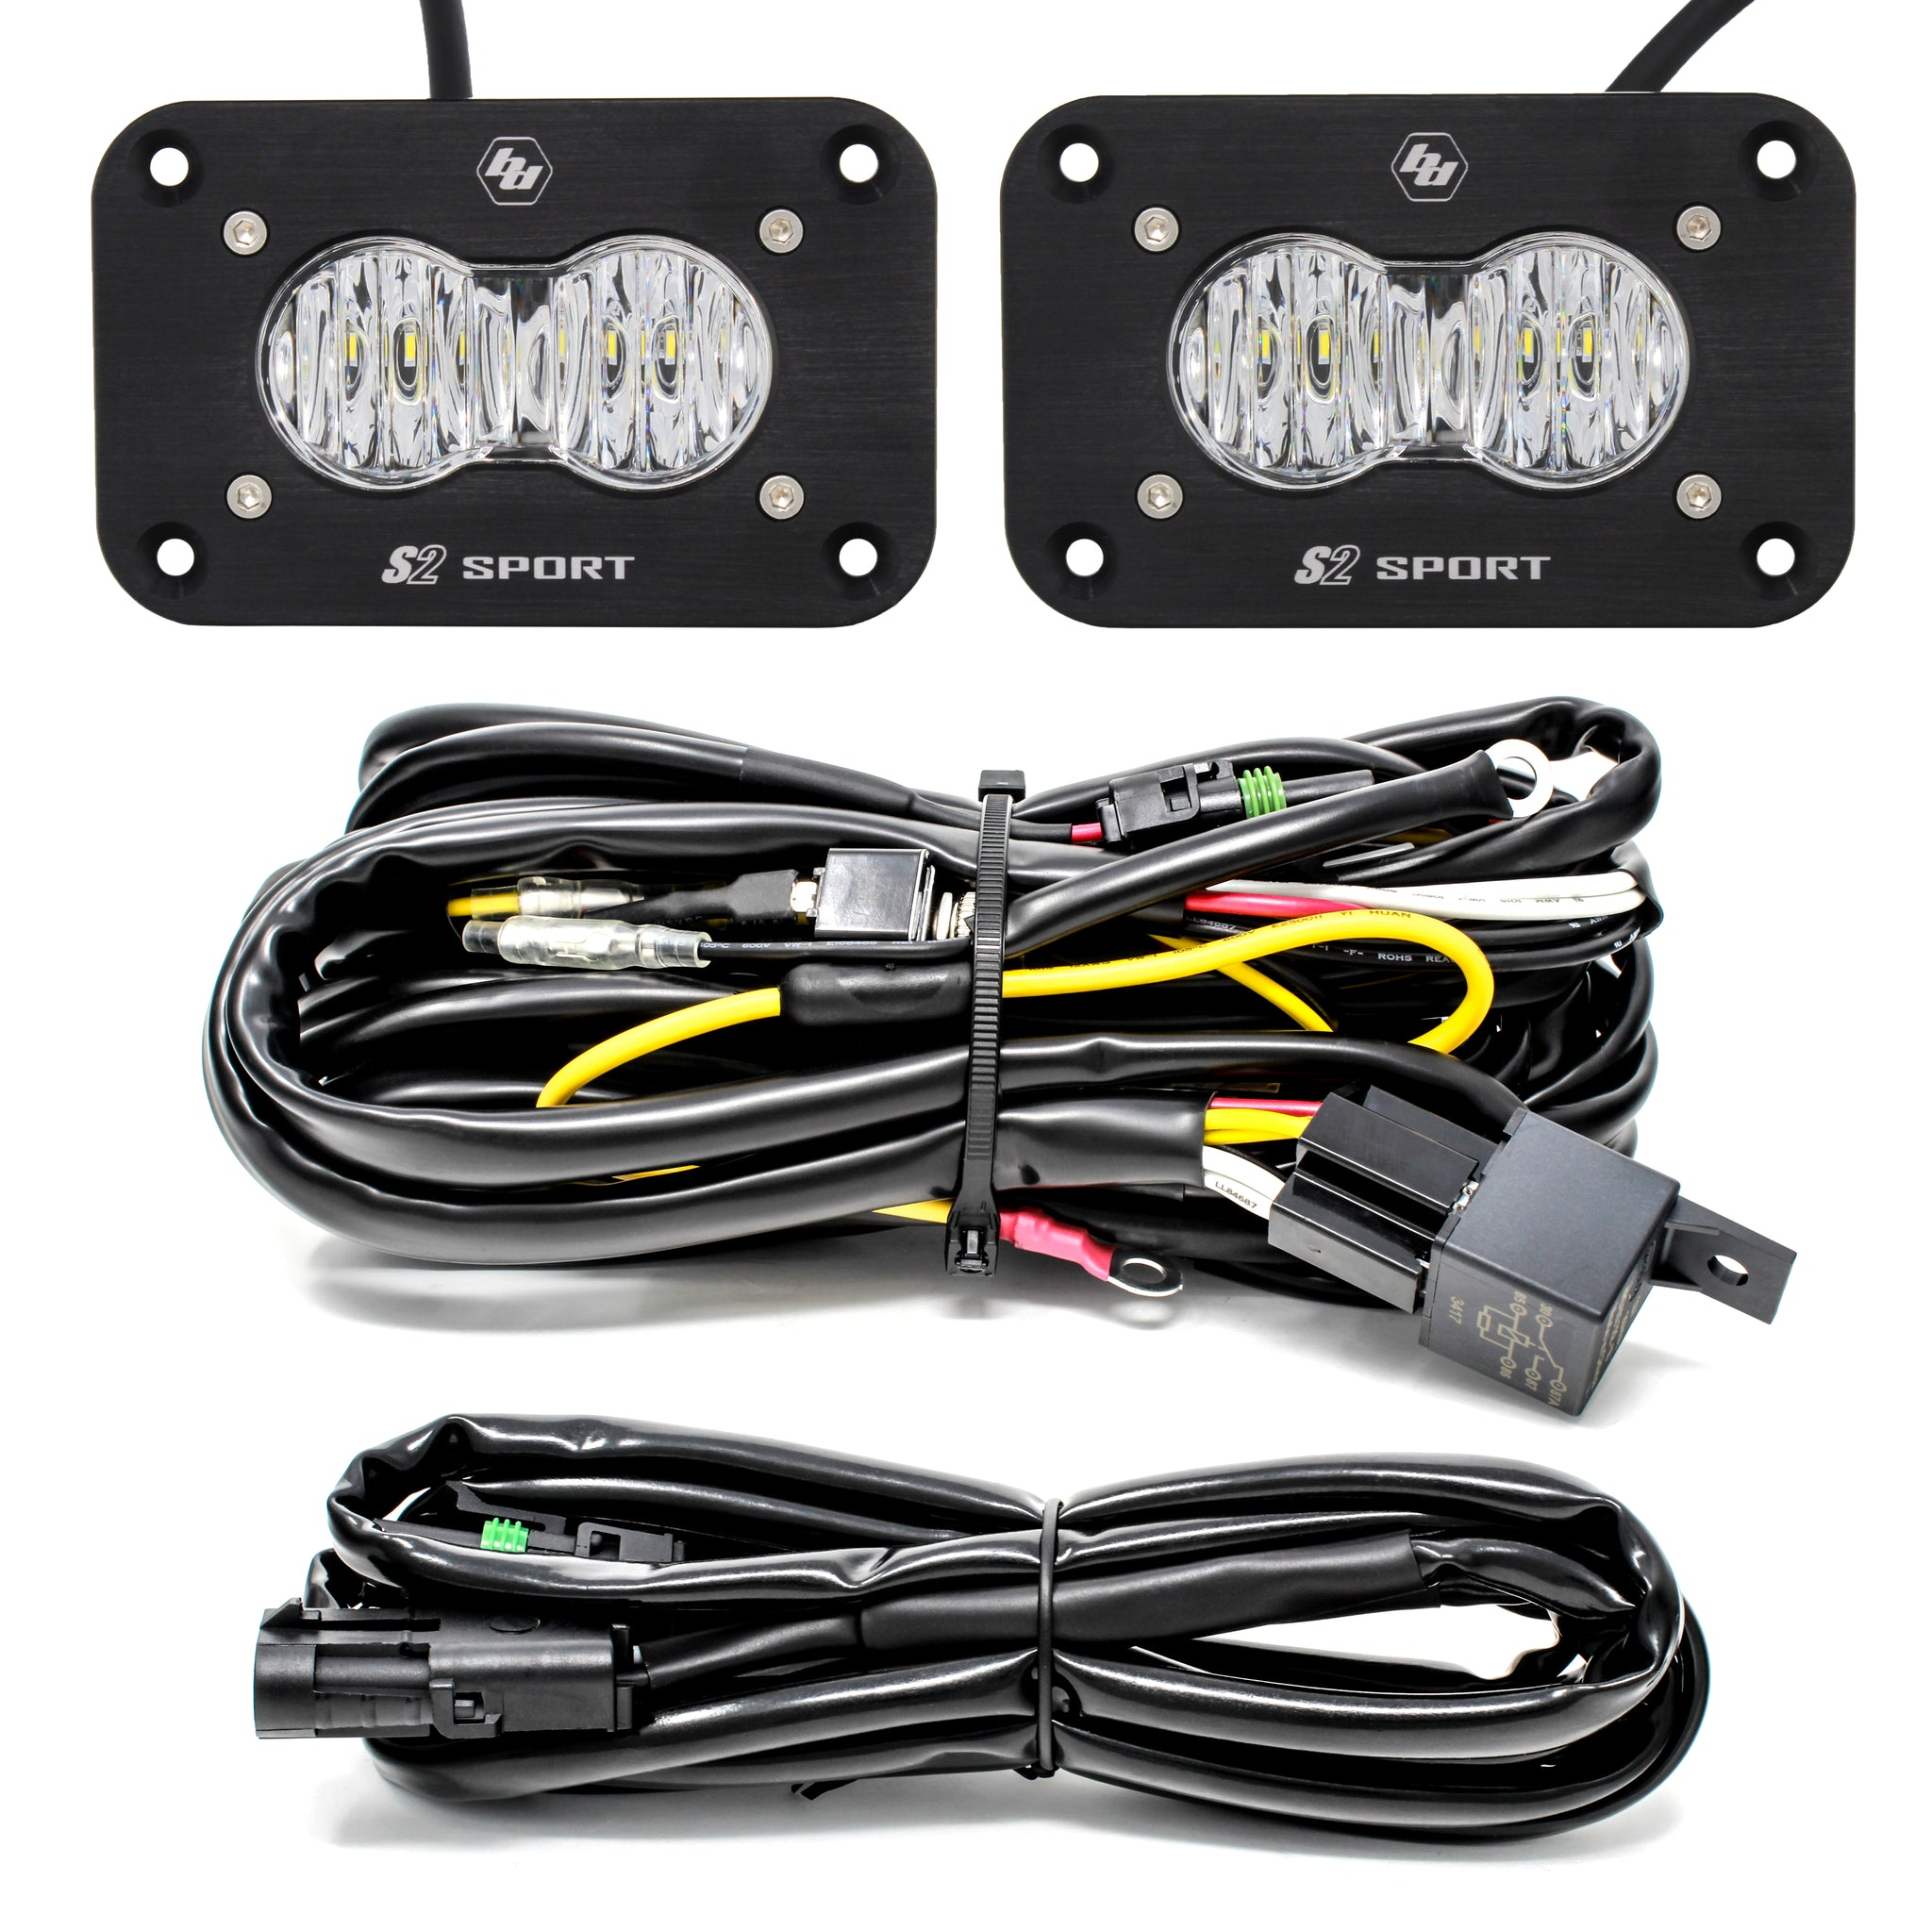 Baja Designs S2 Sport - Pair, LED Wide Cornering, Flush Mount, Backup Kit - Colorado & Canyon Enthusiasts